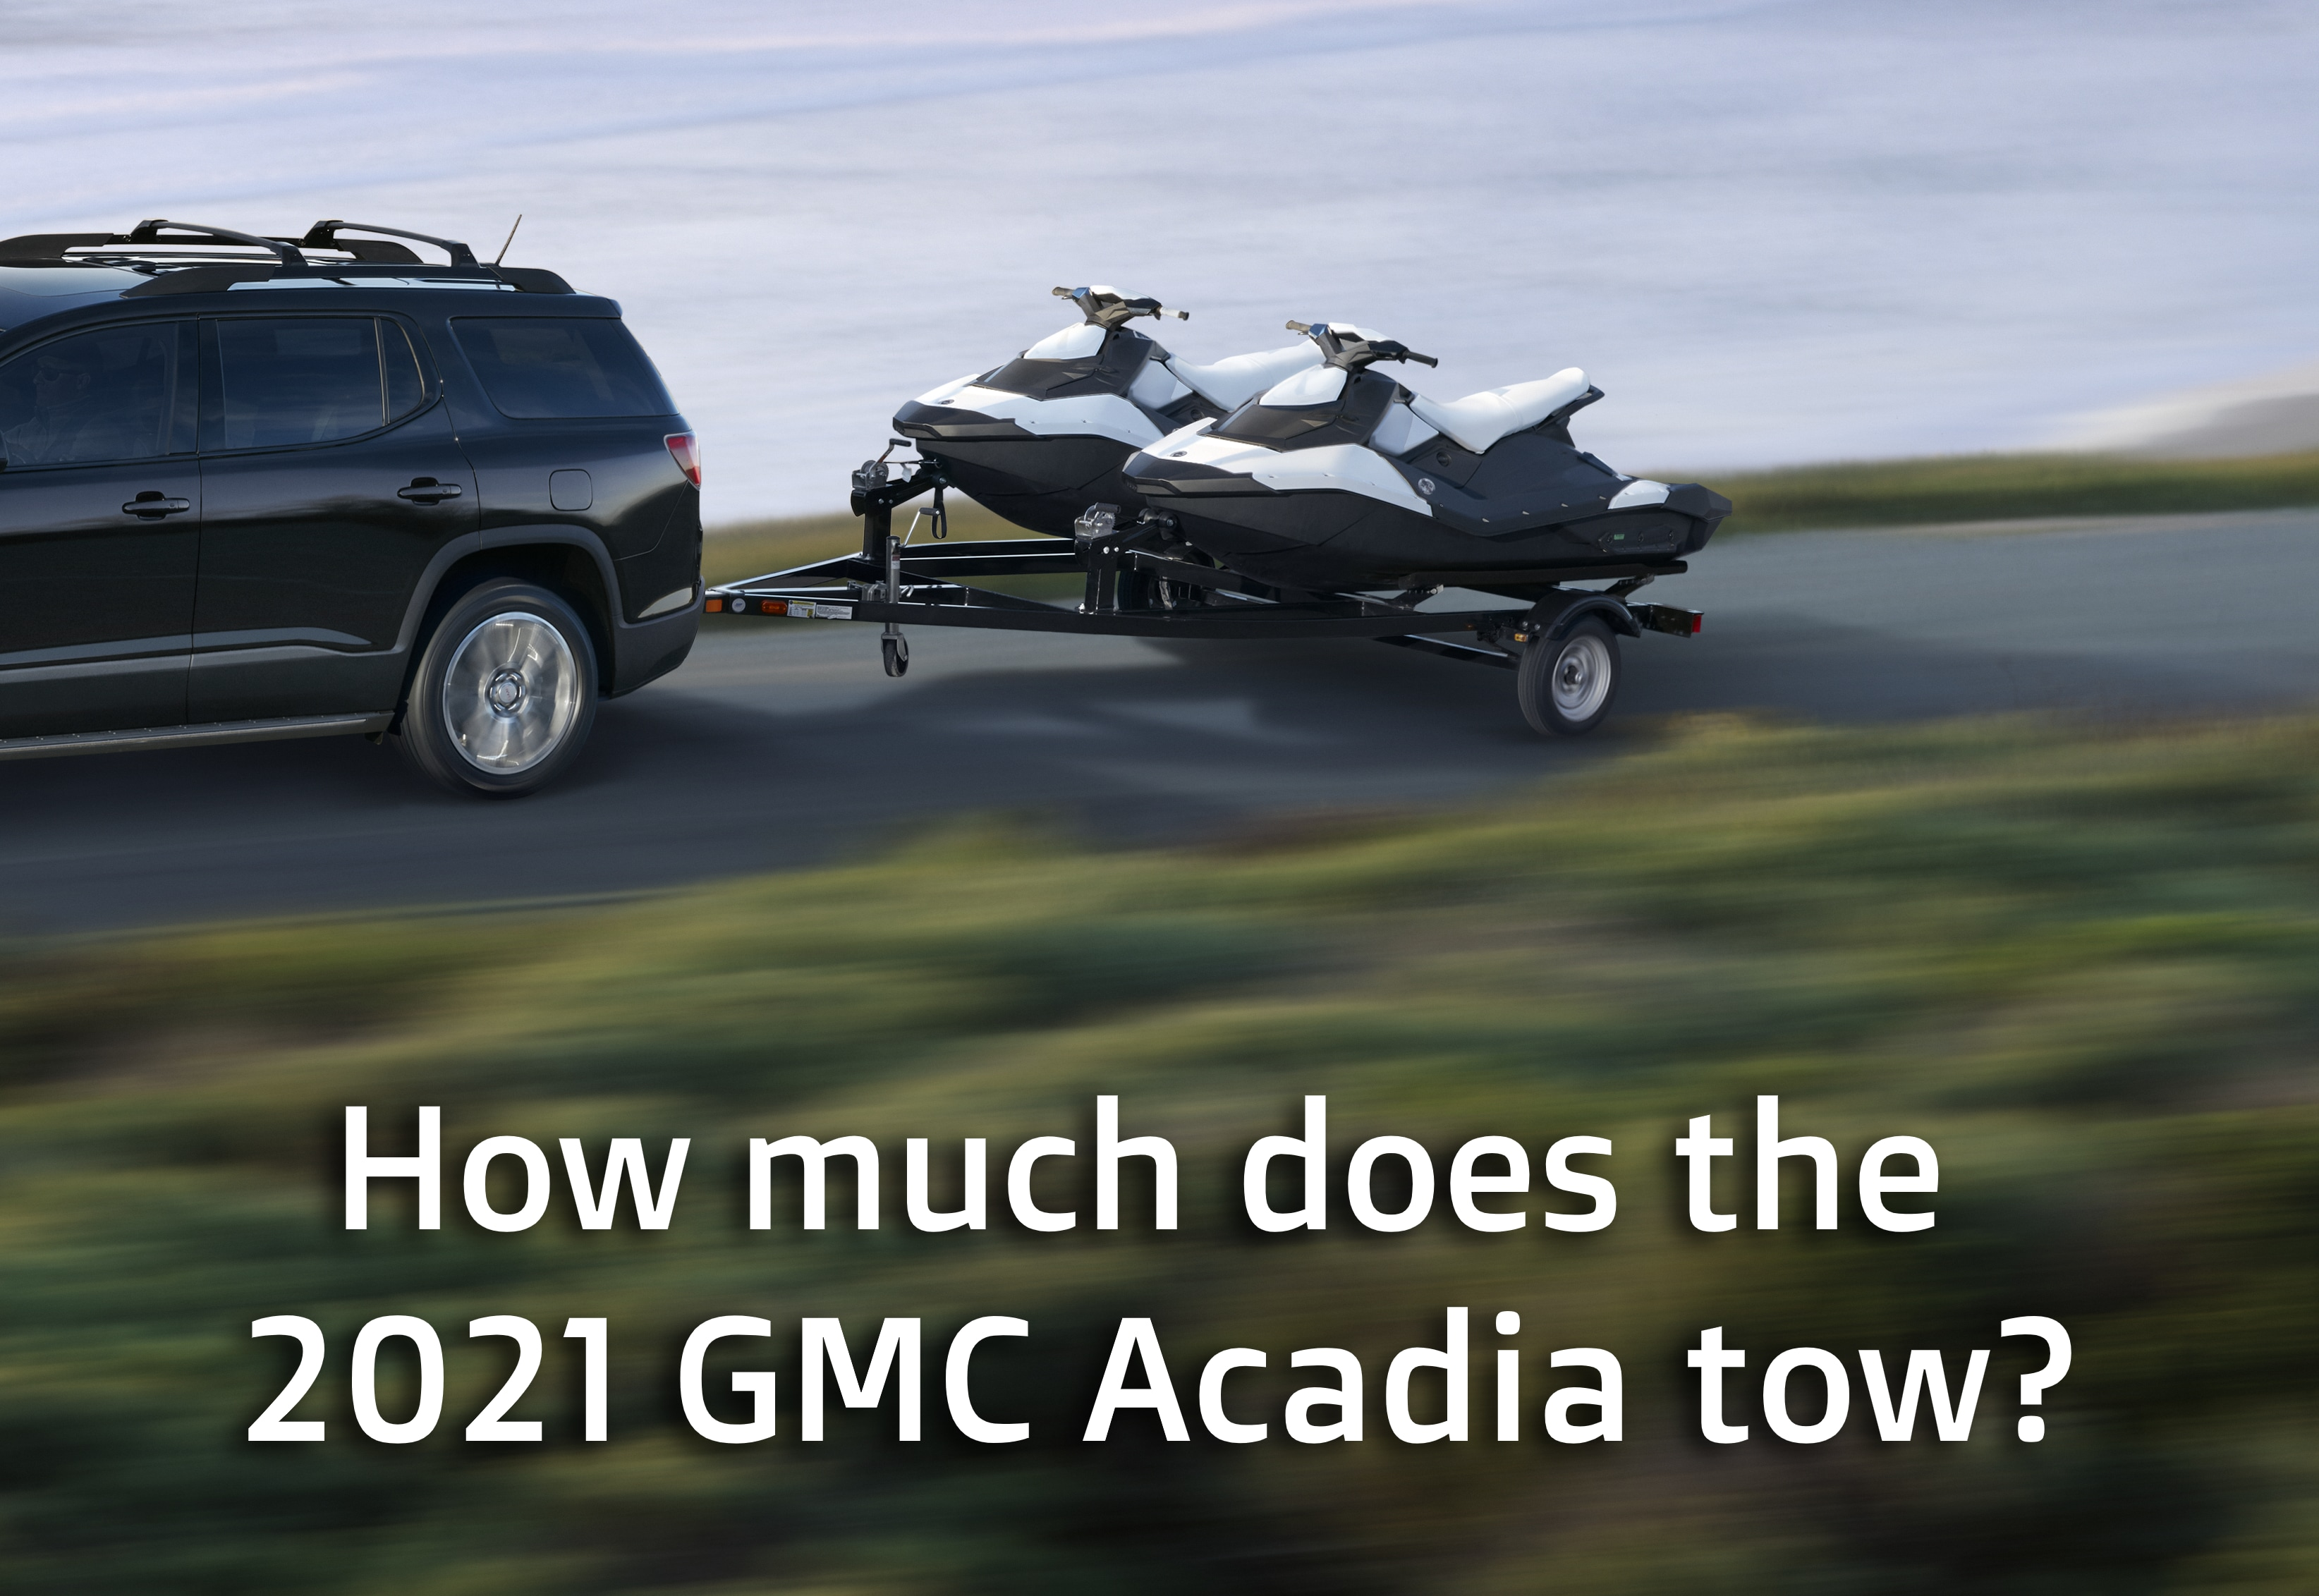 Back end of Acadia towing a pair of Jet Skis